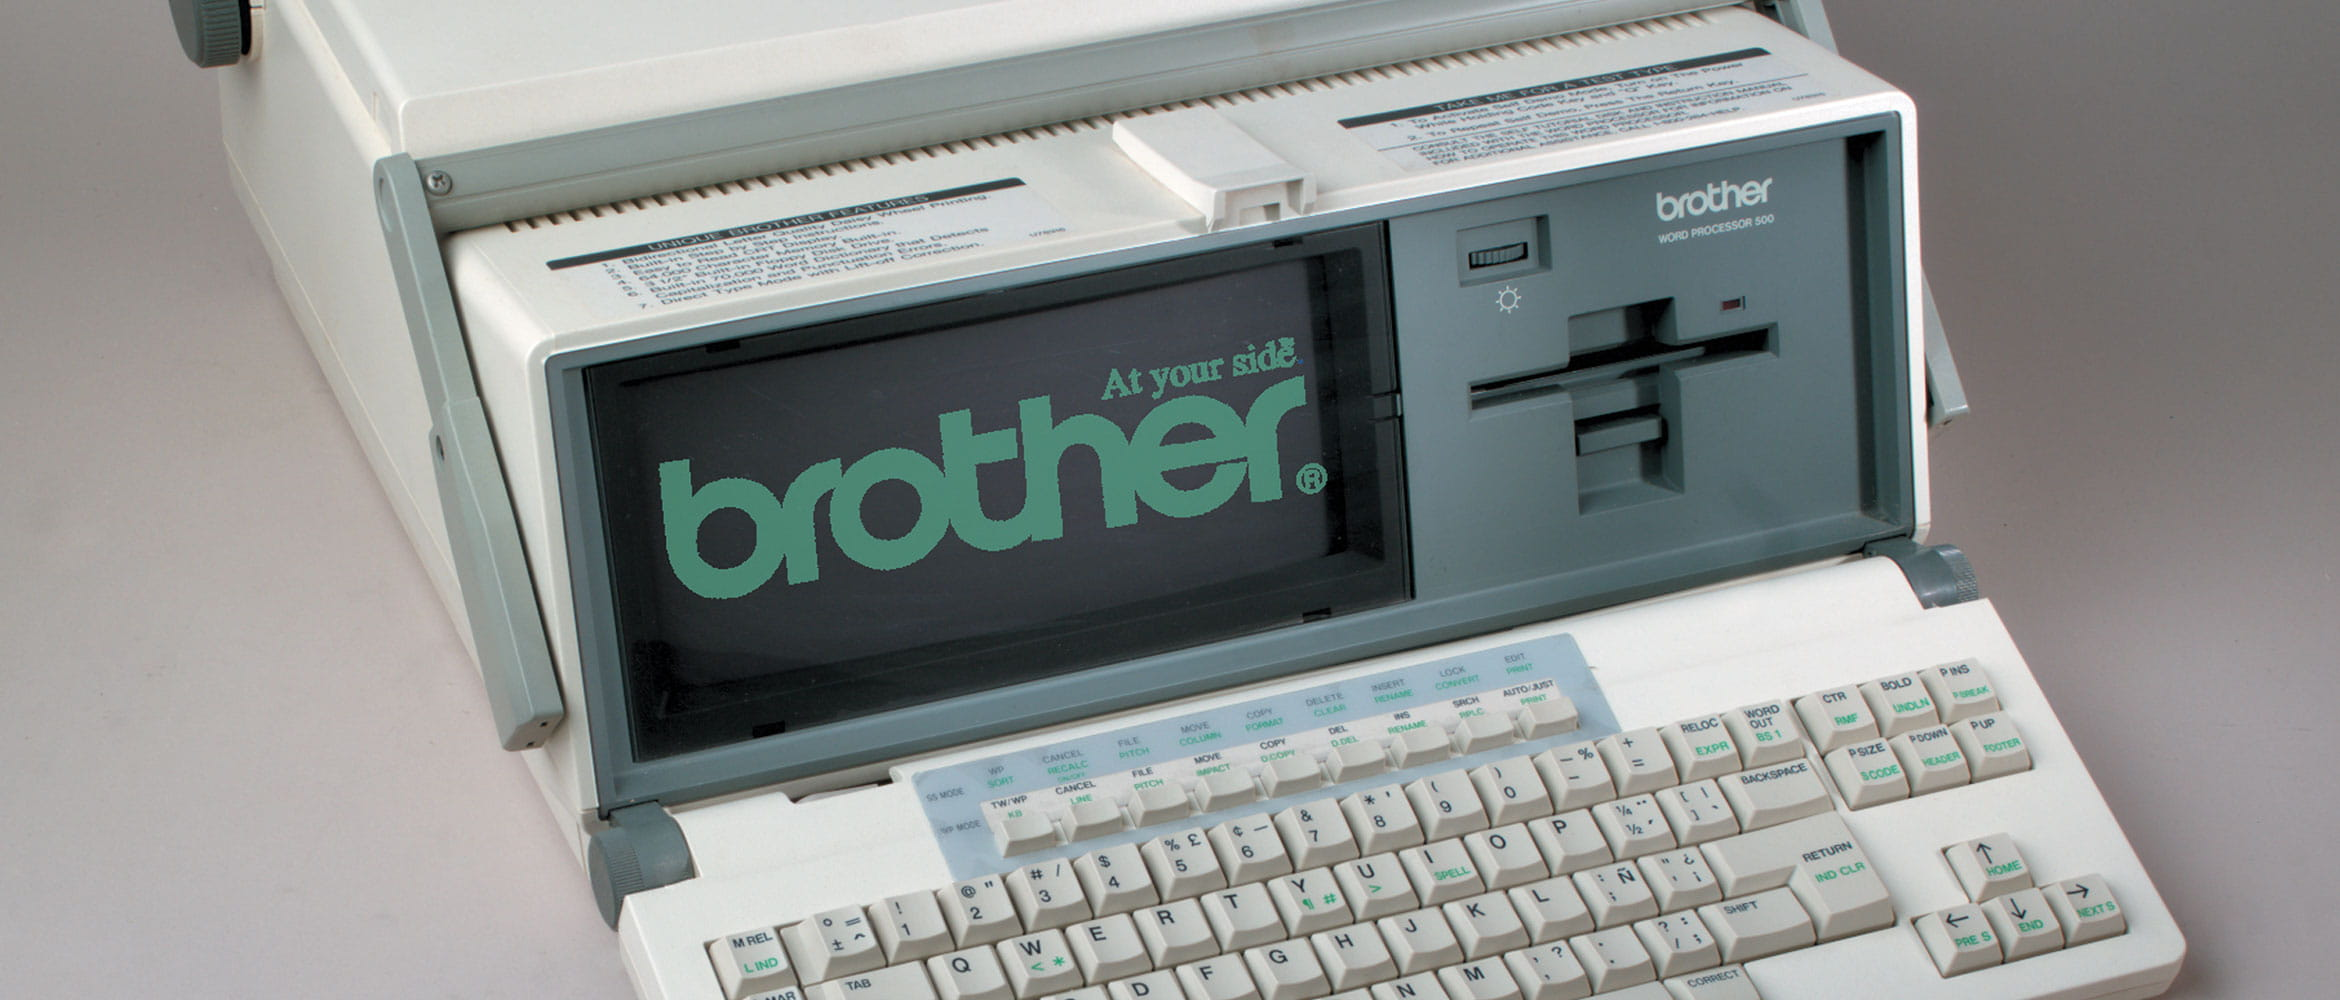 An old word processor machine with Brother logo on the screen